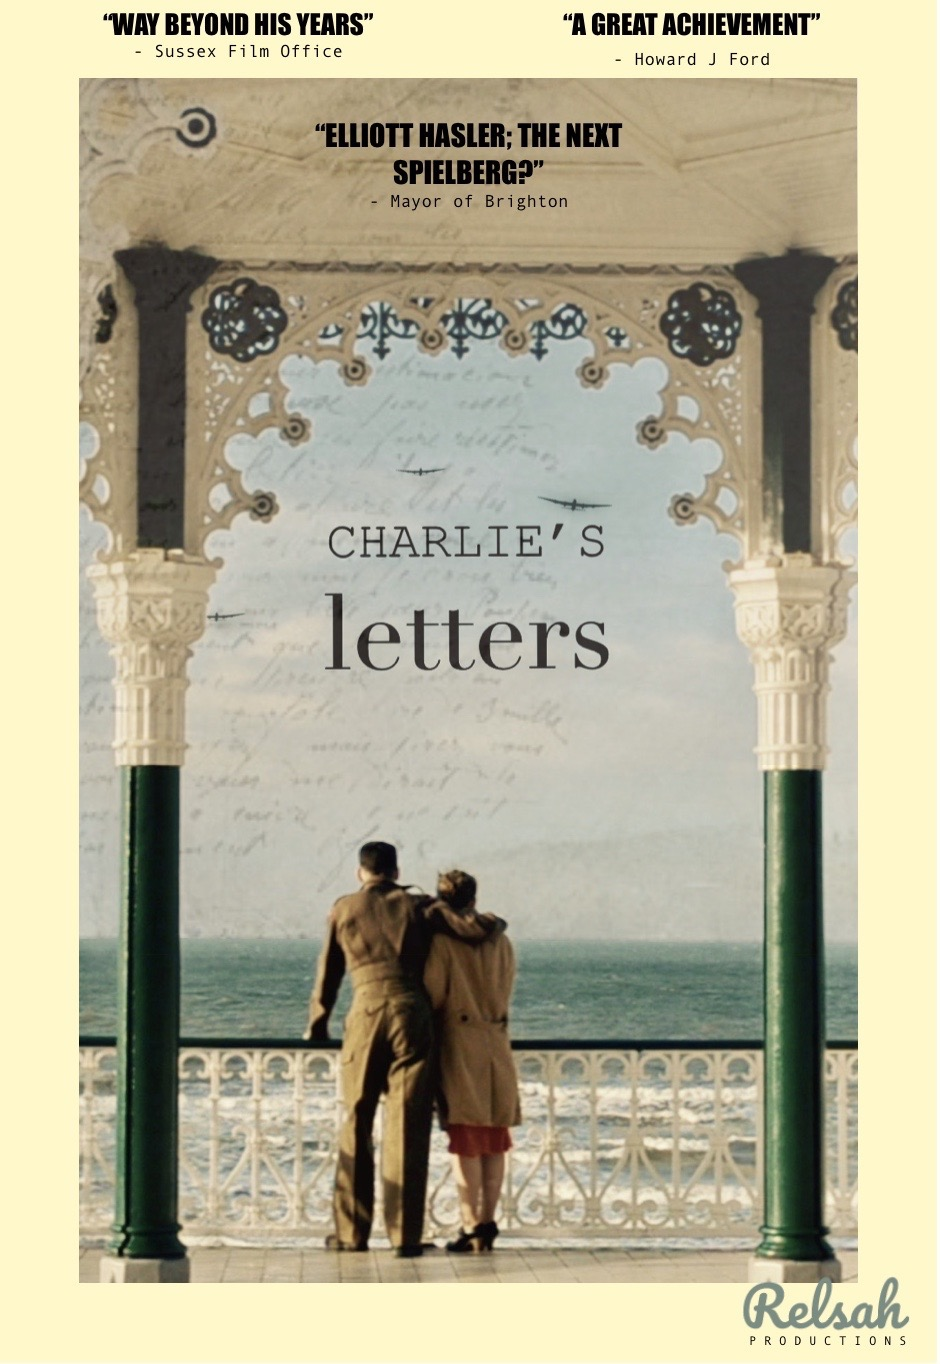 Pick up Charlie's Letters on DVD at The Gratitude Tree Hove until Christmas Eve